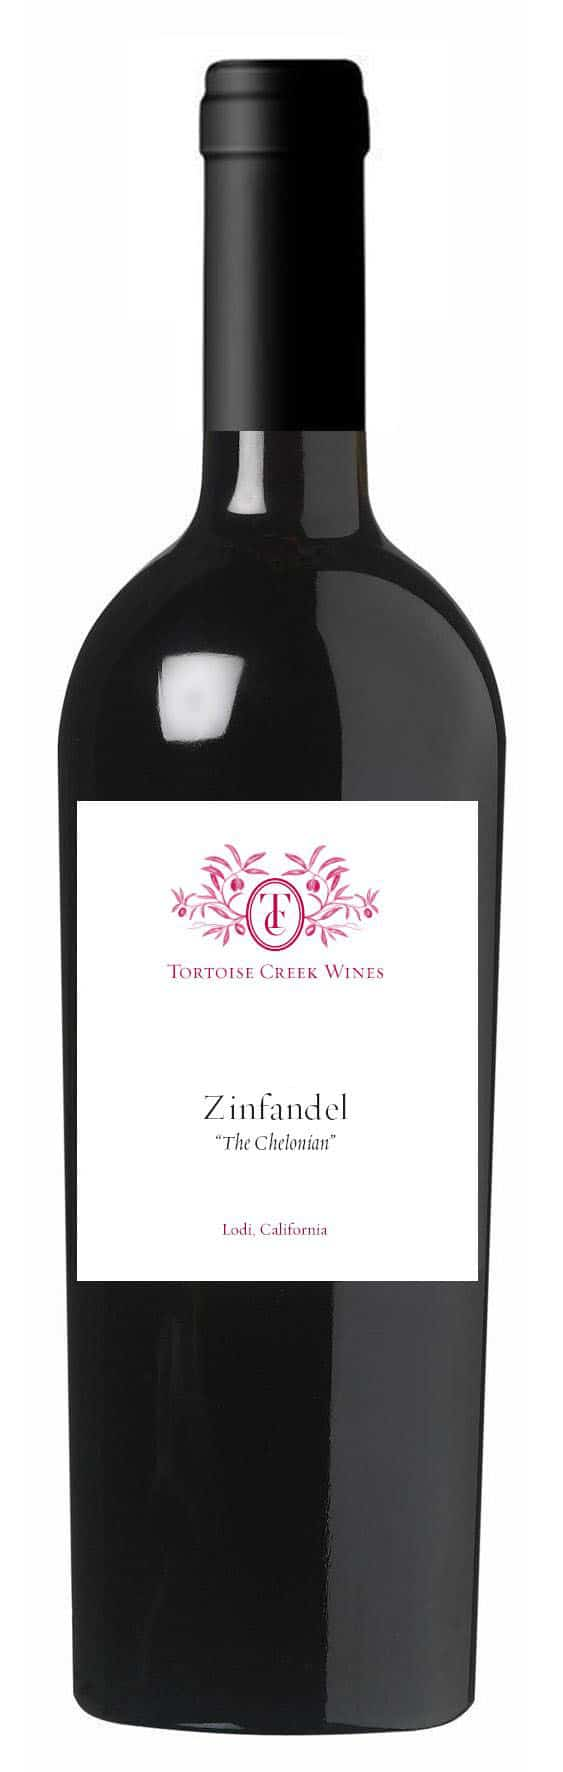 "Tortoise Creek Wines Zinfandel ""The Chelonian"""